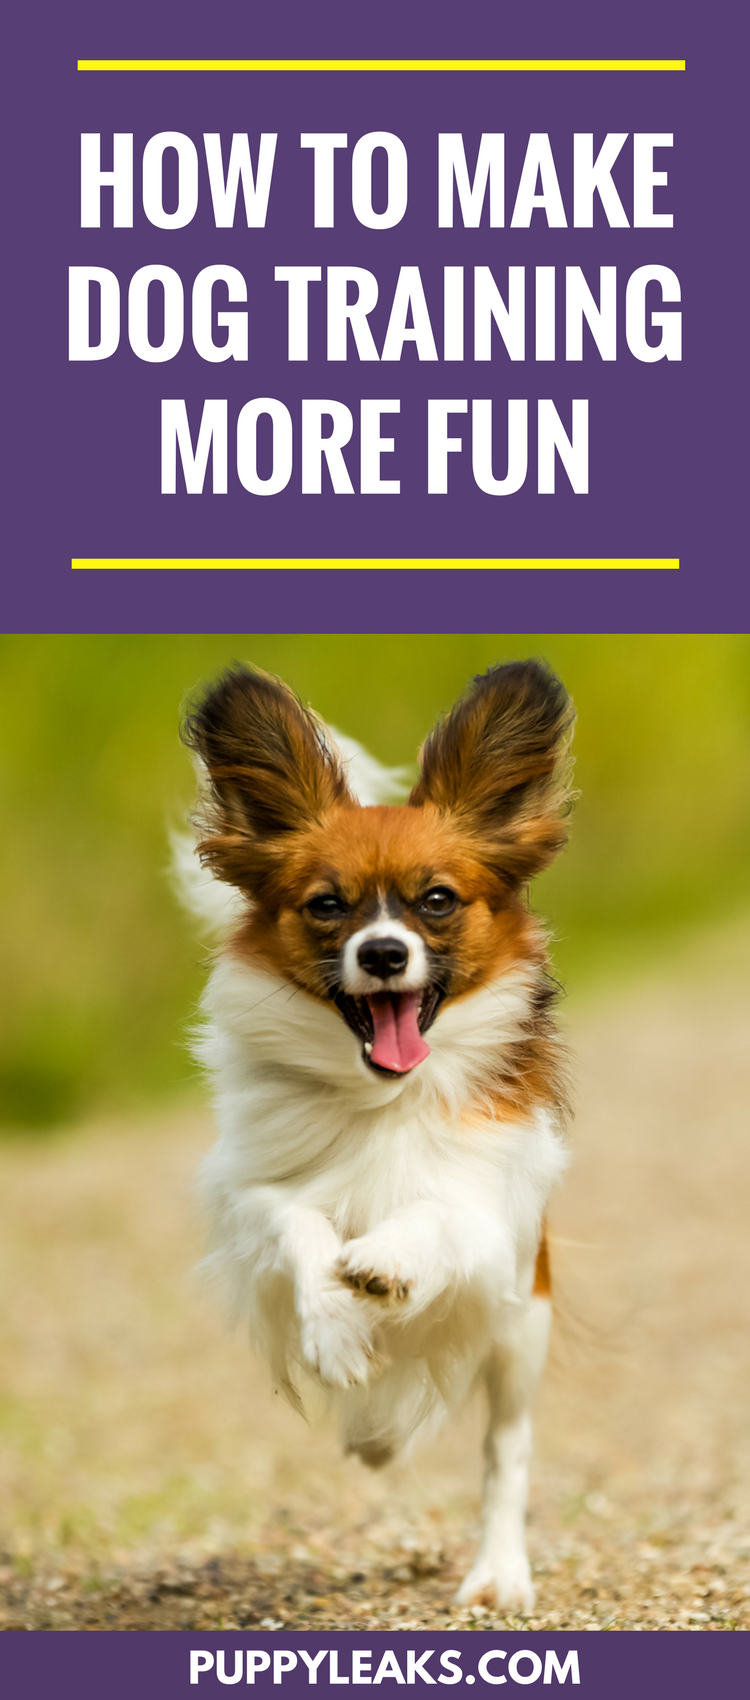 How to make dog training more fun. A few methods that will make training fun for your dog.